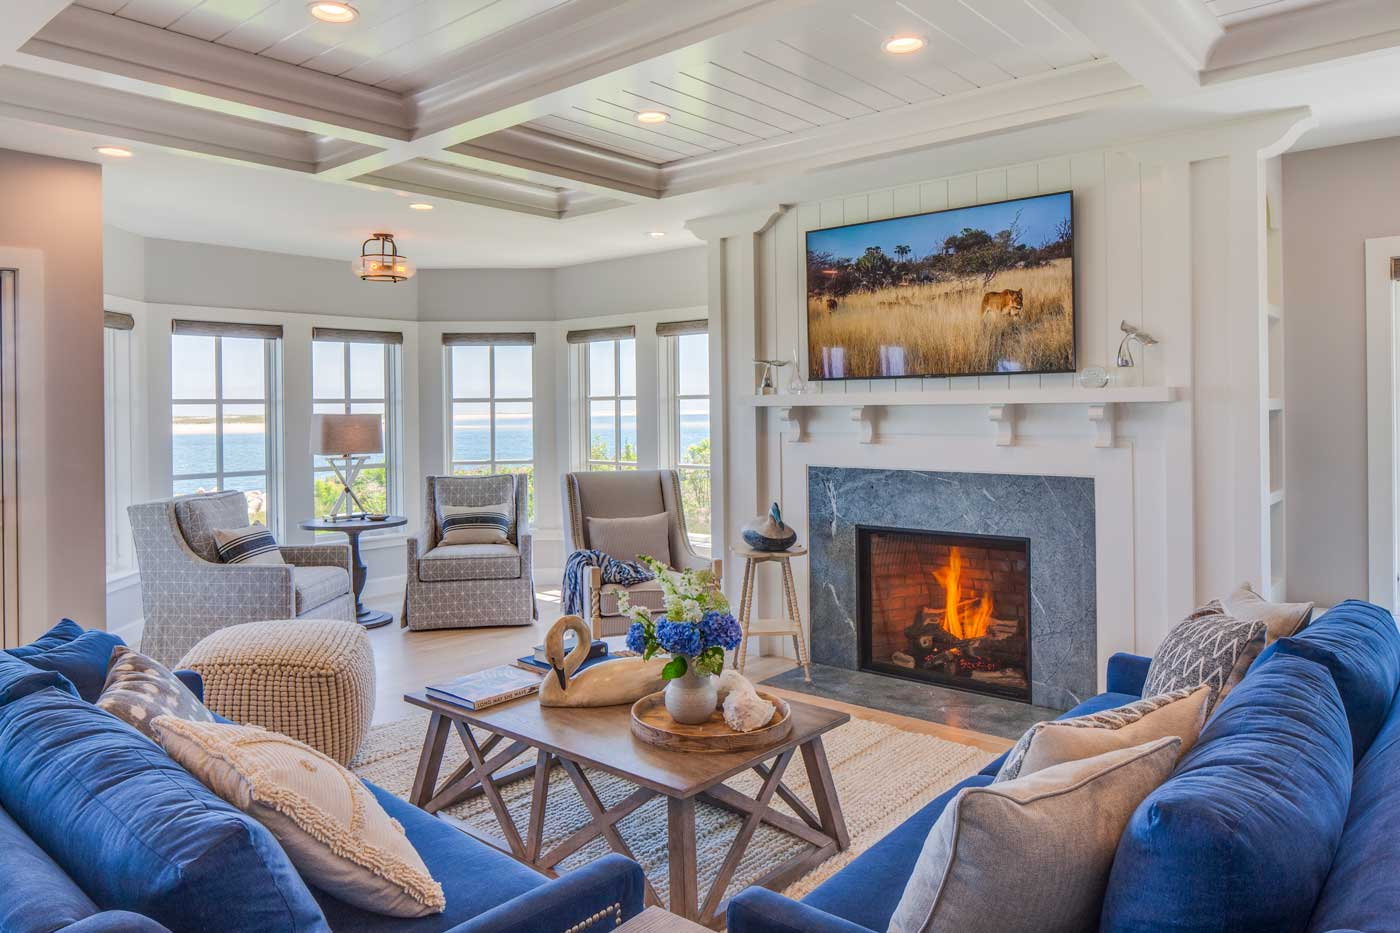 Family room with a fire burning, views of the ocean, blue sofas and custom ceiling